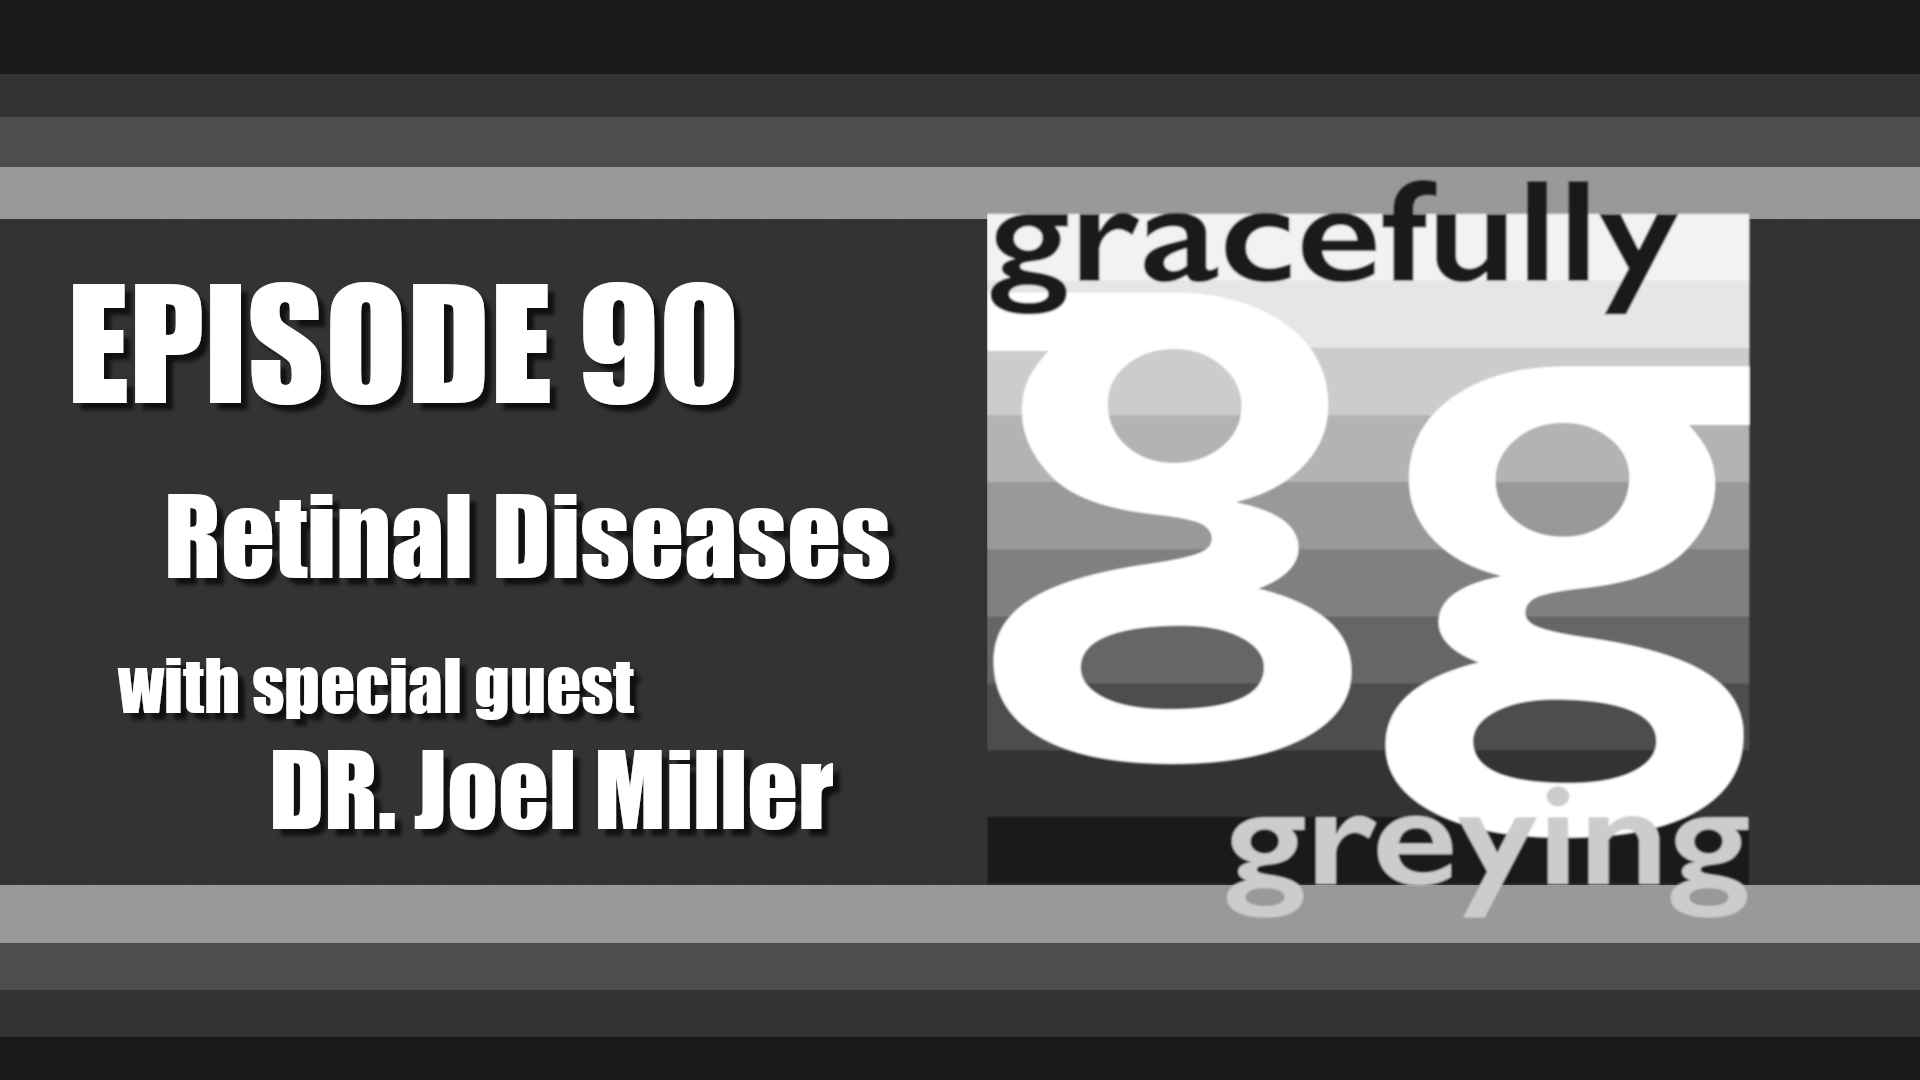 Gracefully Greying - Episode 90